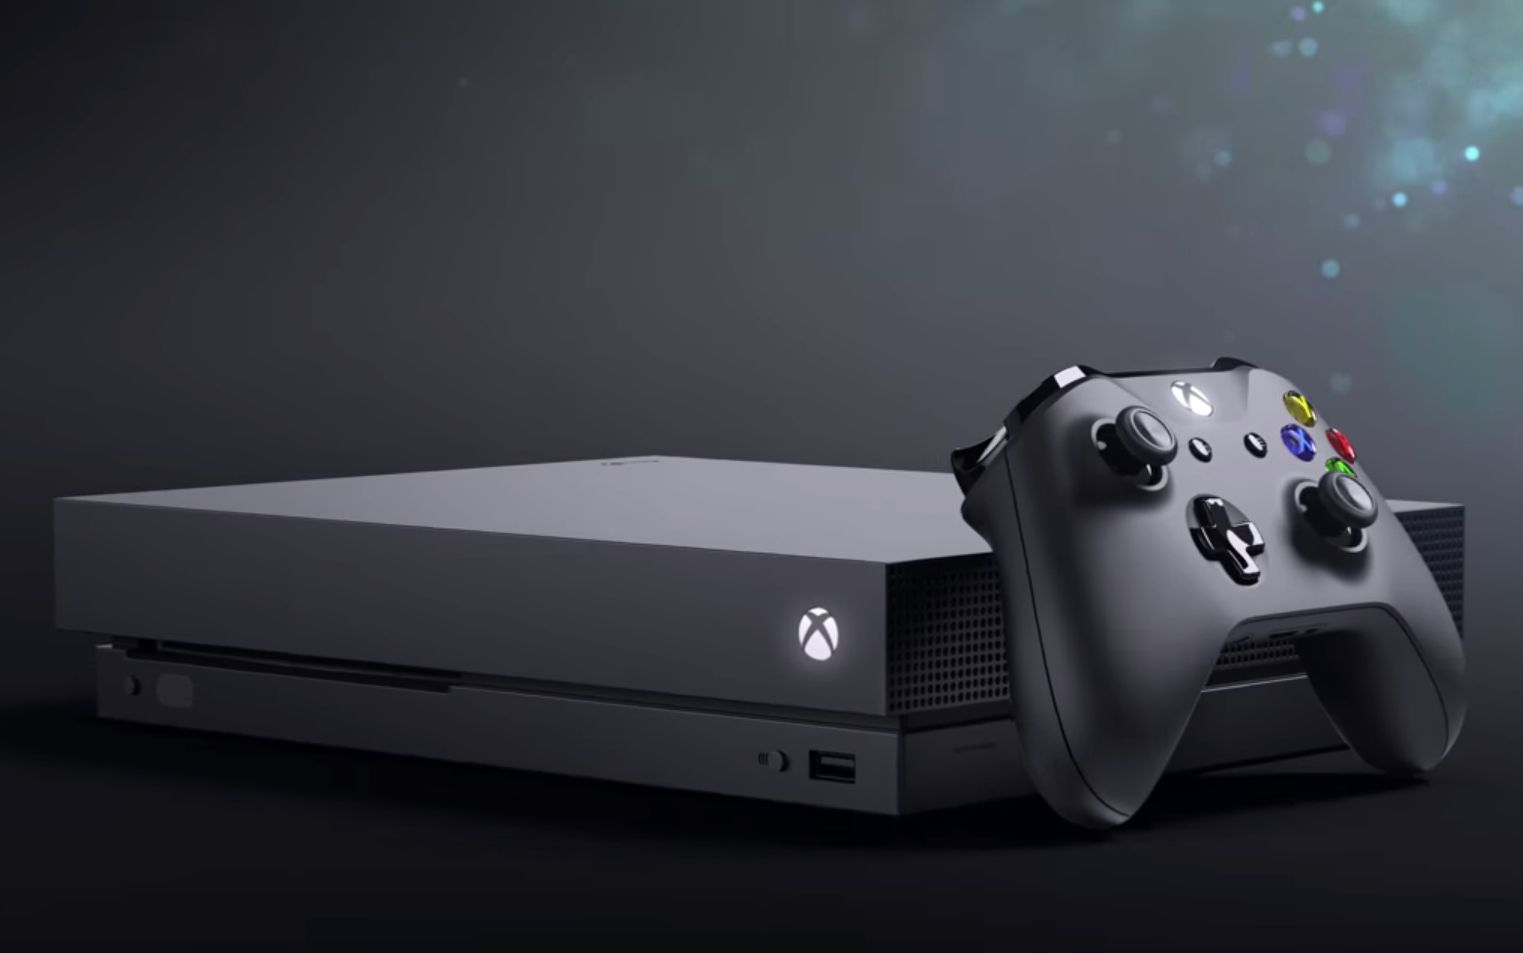 2854087d8033 Xbox One X  Everything you need to know about Microsoft s powerful 4K gaming  console. Microsoft s Project Scorpio ...